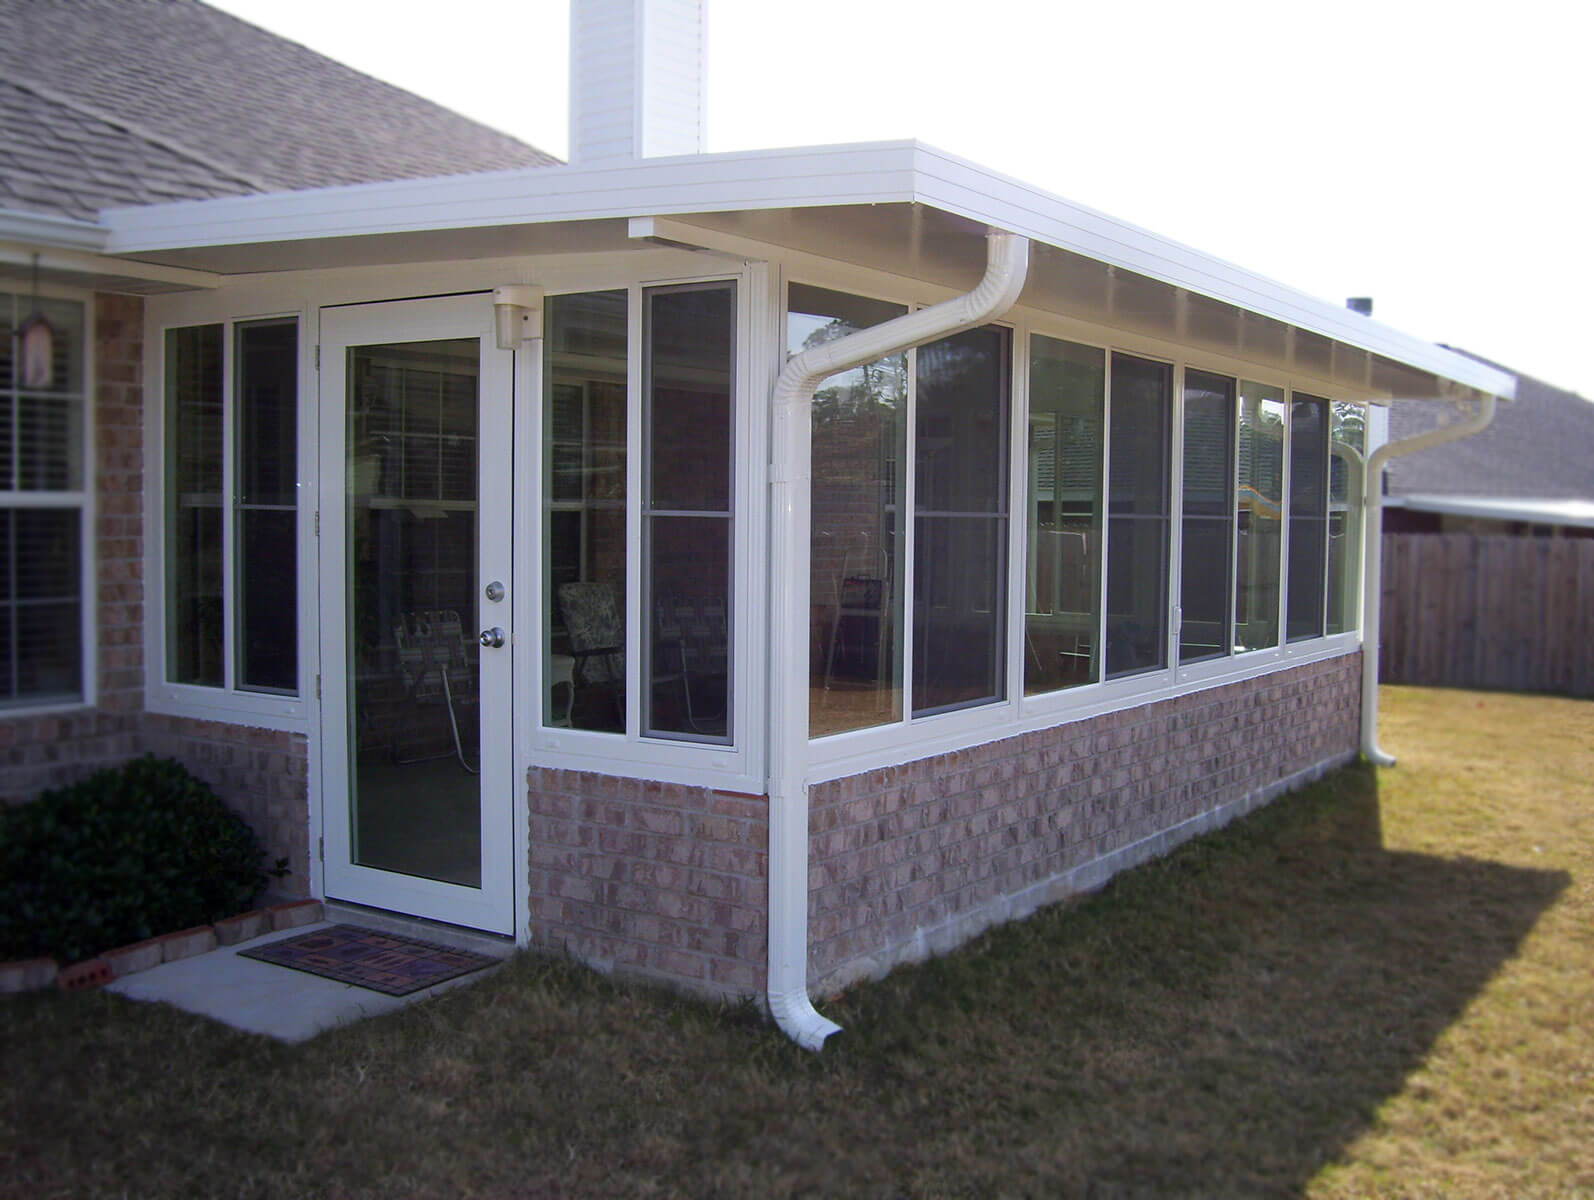 sunrooms pensacola fl patio enclosures sun rooms. Black Bedroom Furniture Sets. Home Design Ideas